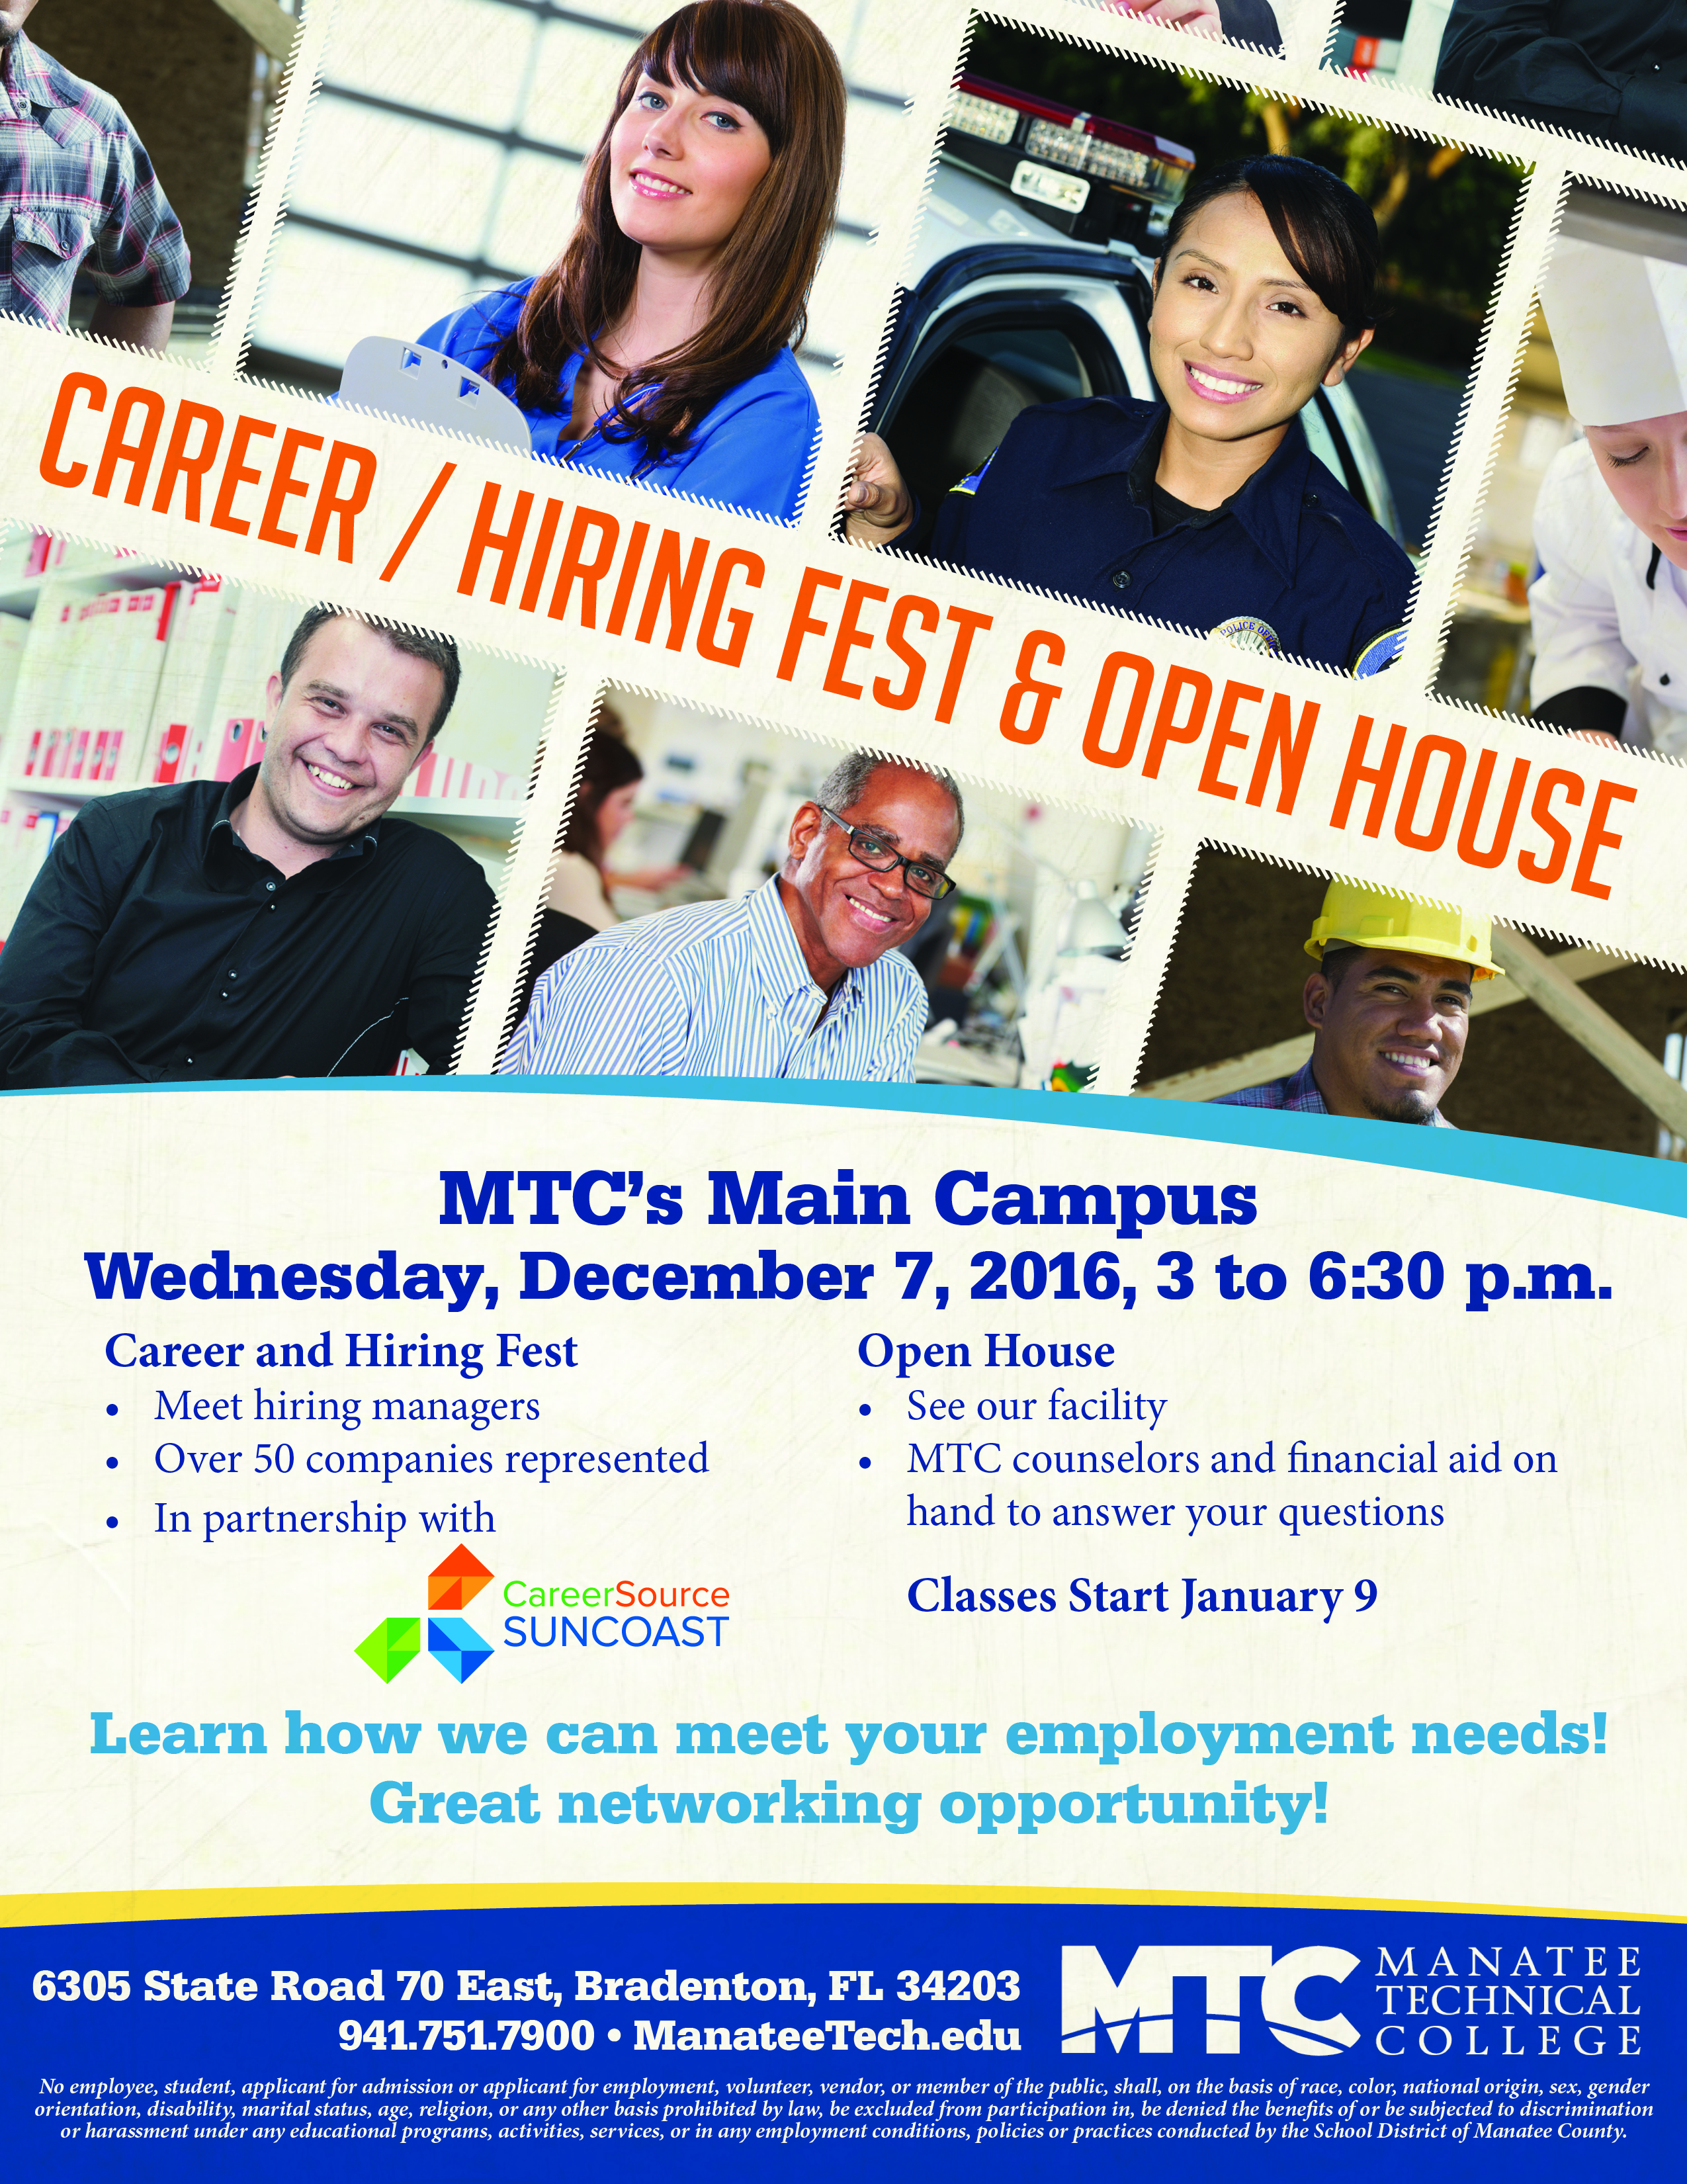 Career/Hiring Fest & Open House - Manatee Technical College